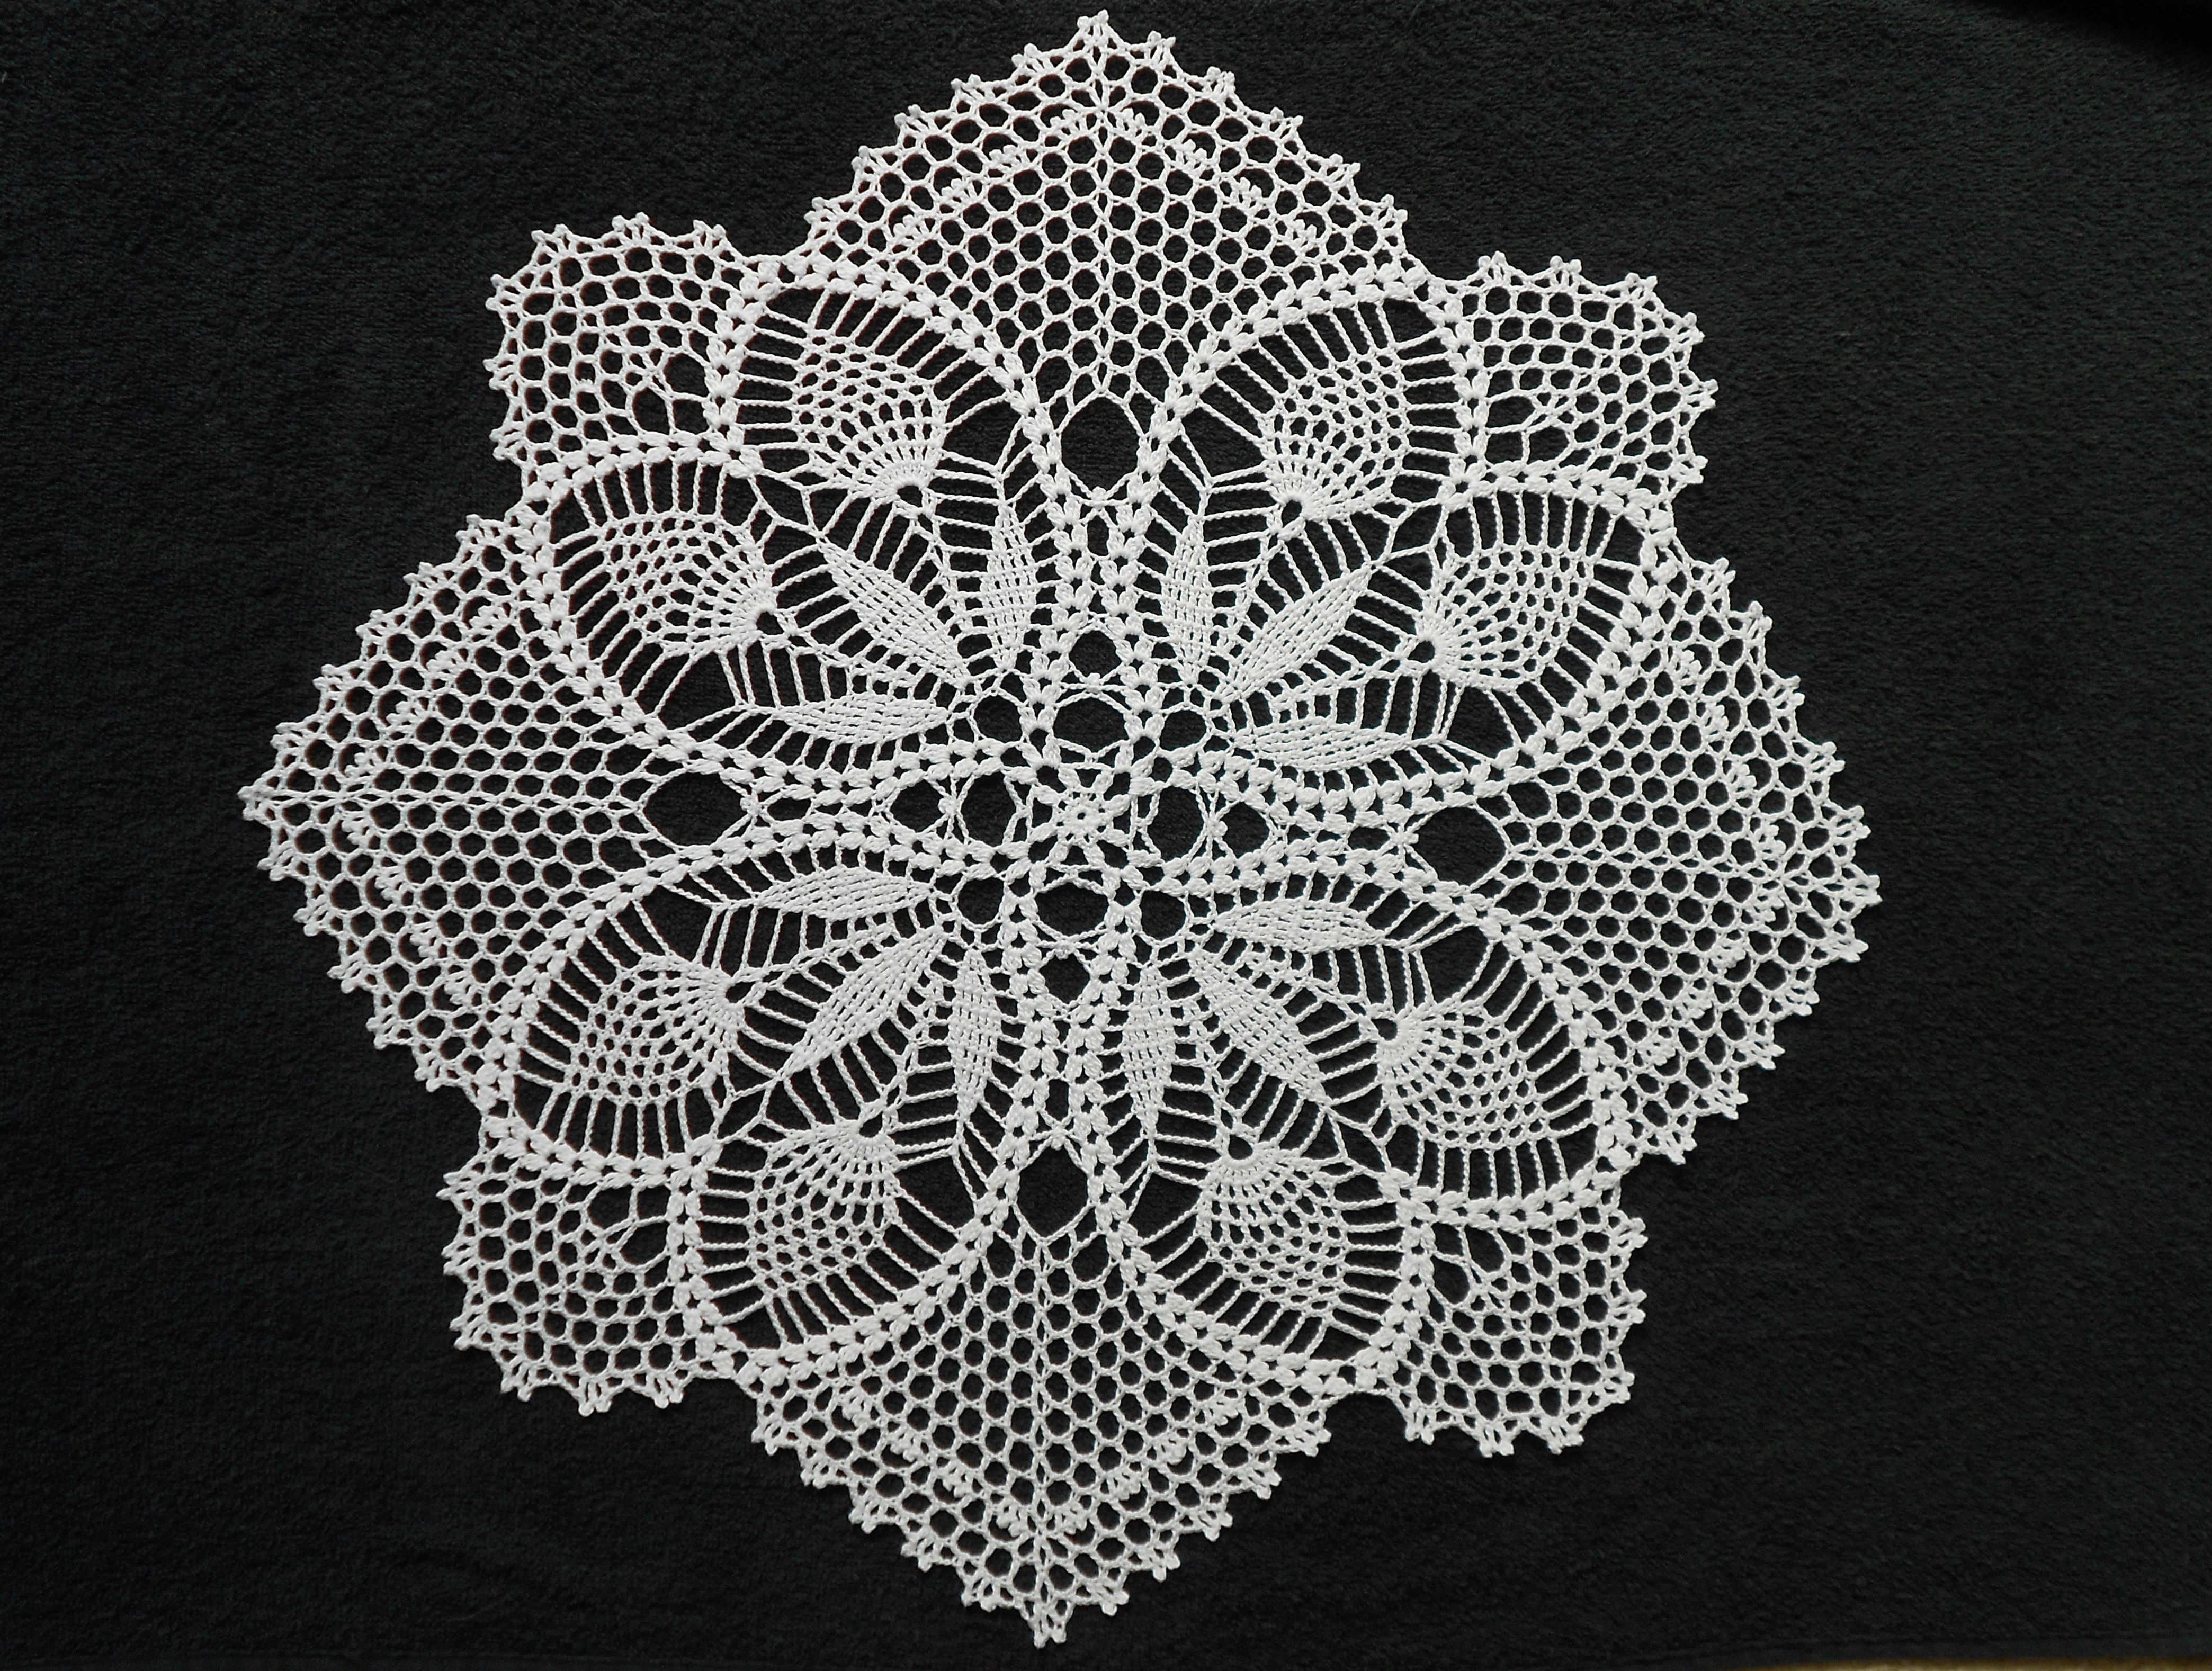 Handmade crochet cotton doily with pineapple shape details flowers handmade crochet cotton doily with pineapple shape details flowers 205 bankloansurffo Image collections